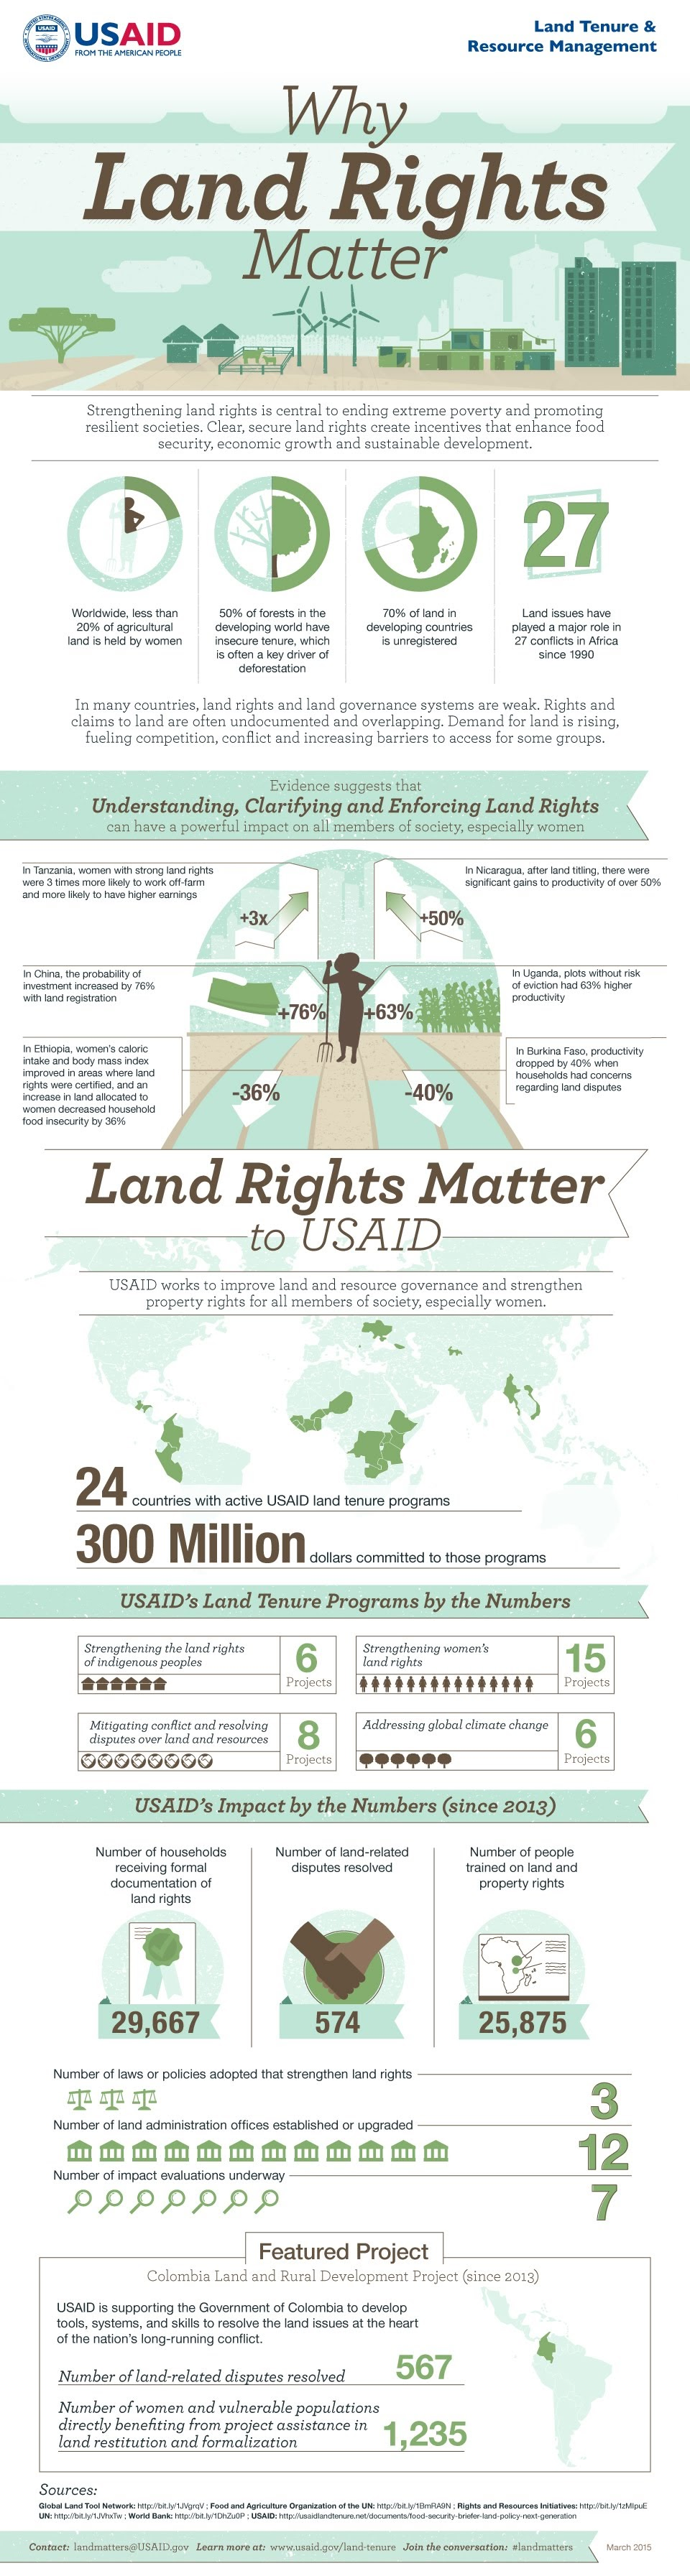 Why Land Rights Matter #infographic